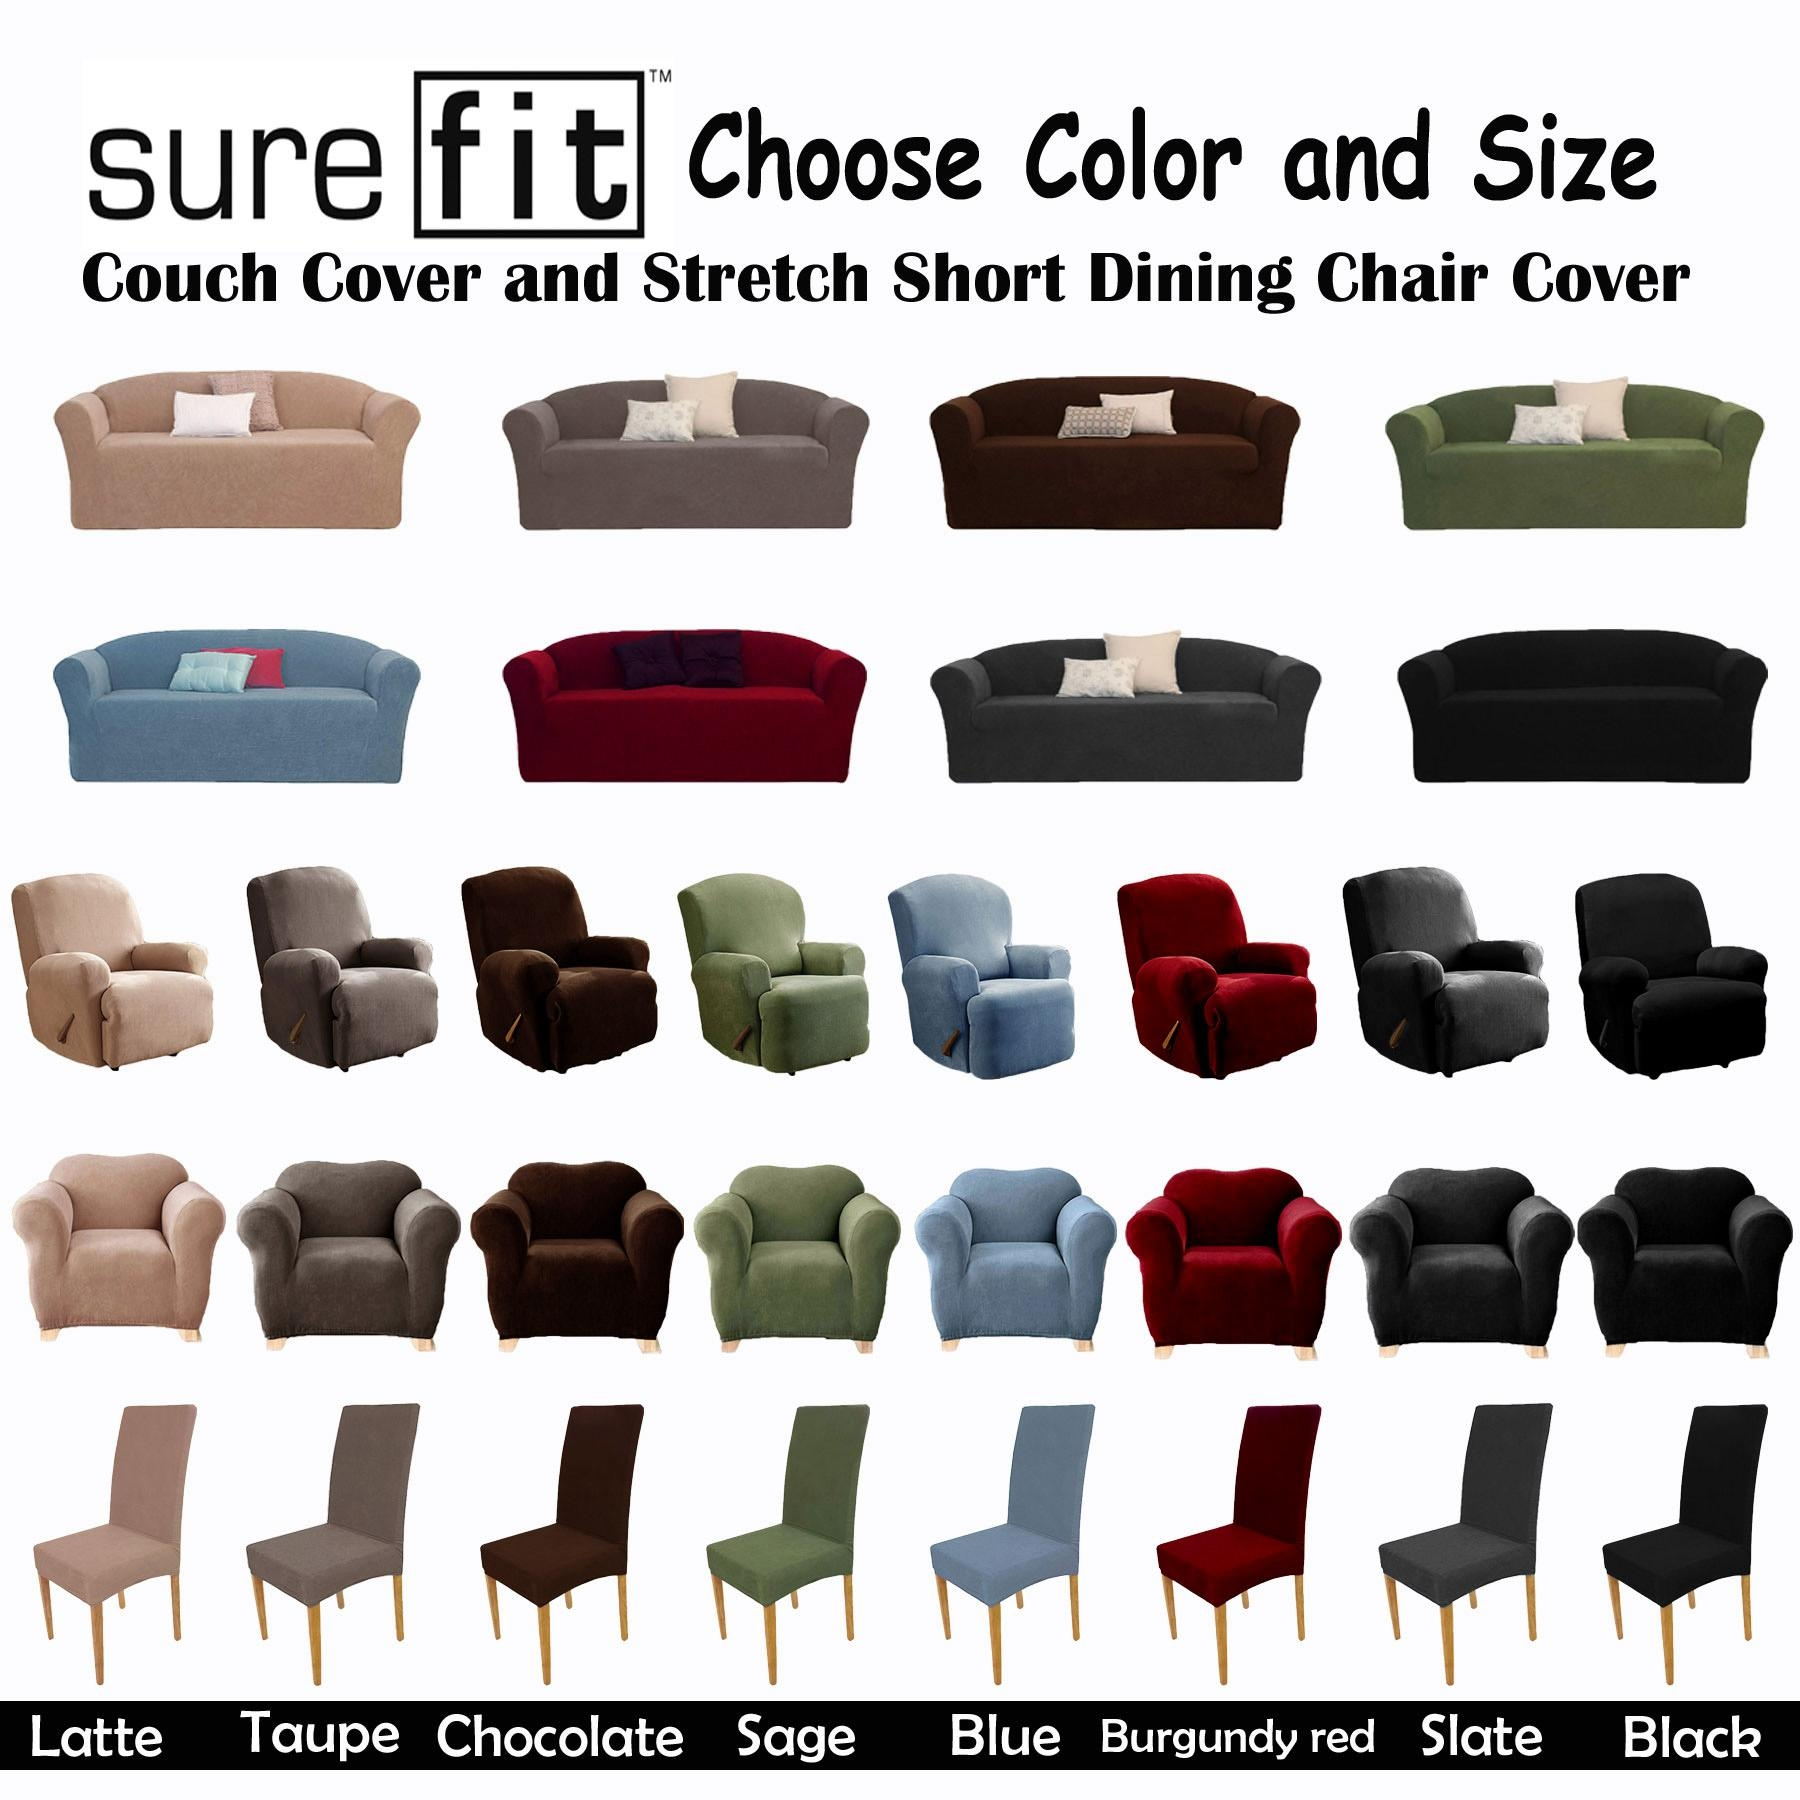 Stretch Surefit Couch Cover – 1 Seater, 1 Seater Recliner, 2 Regarding Stretch Covers For Recliners (Image 17 of 20)